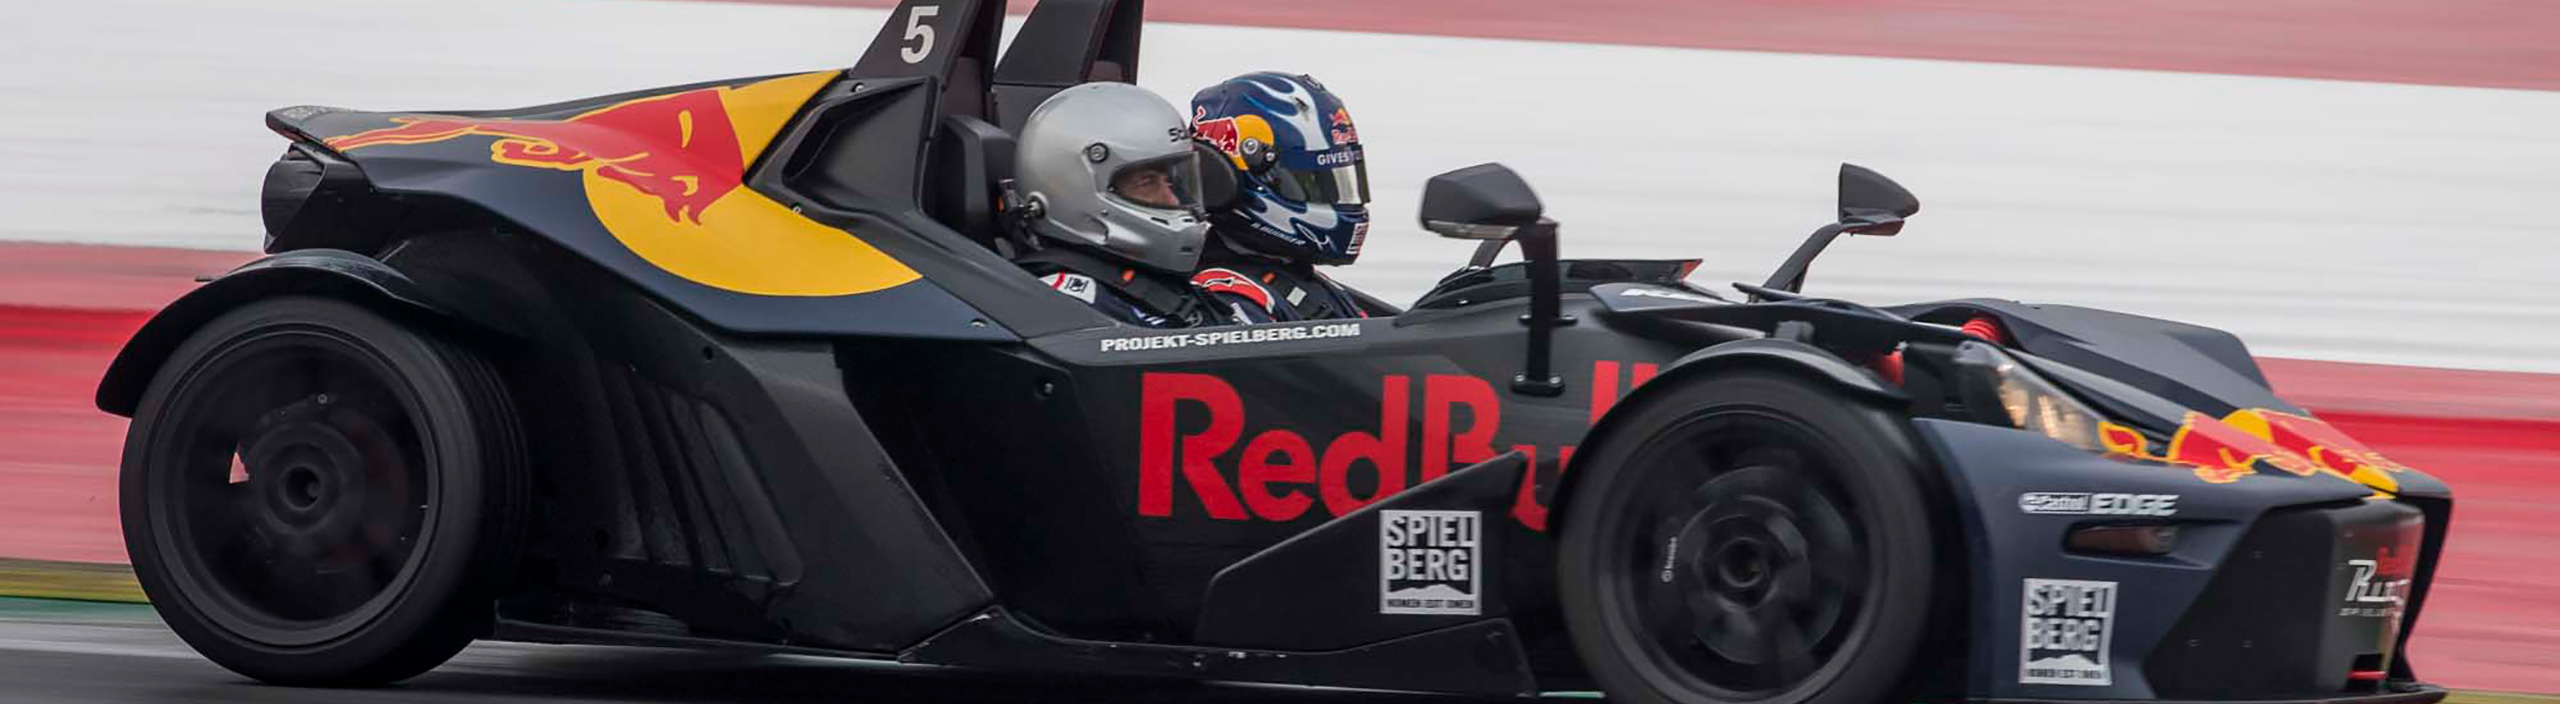 Jabra is the audio innovation partner for selected Red Bull athlete projects